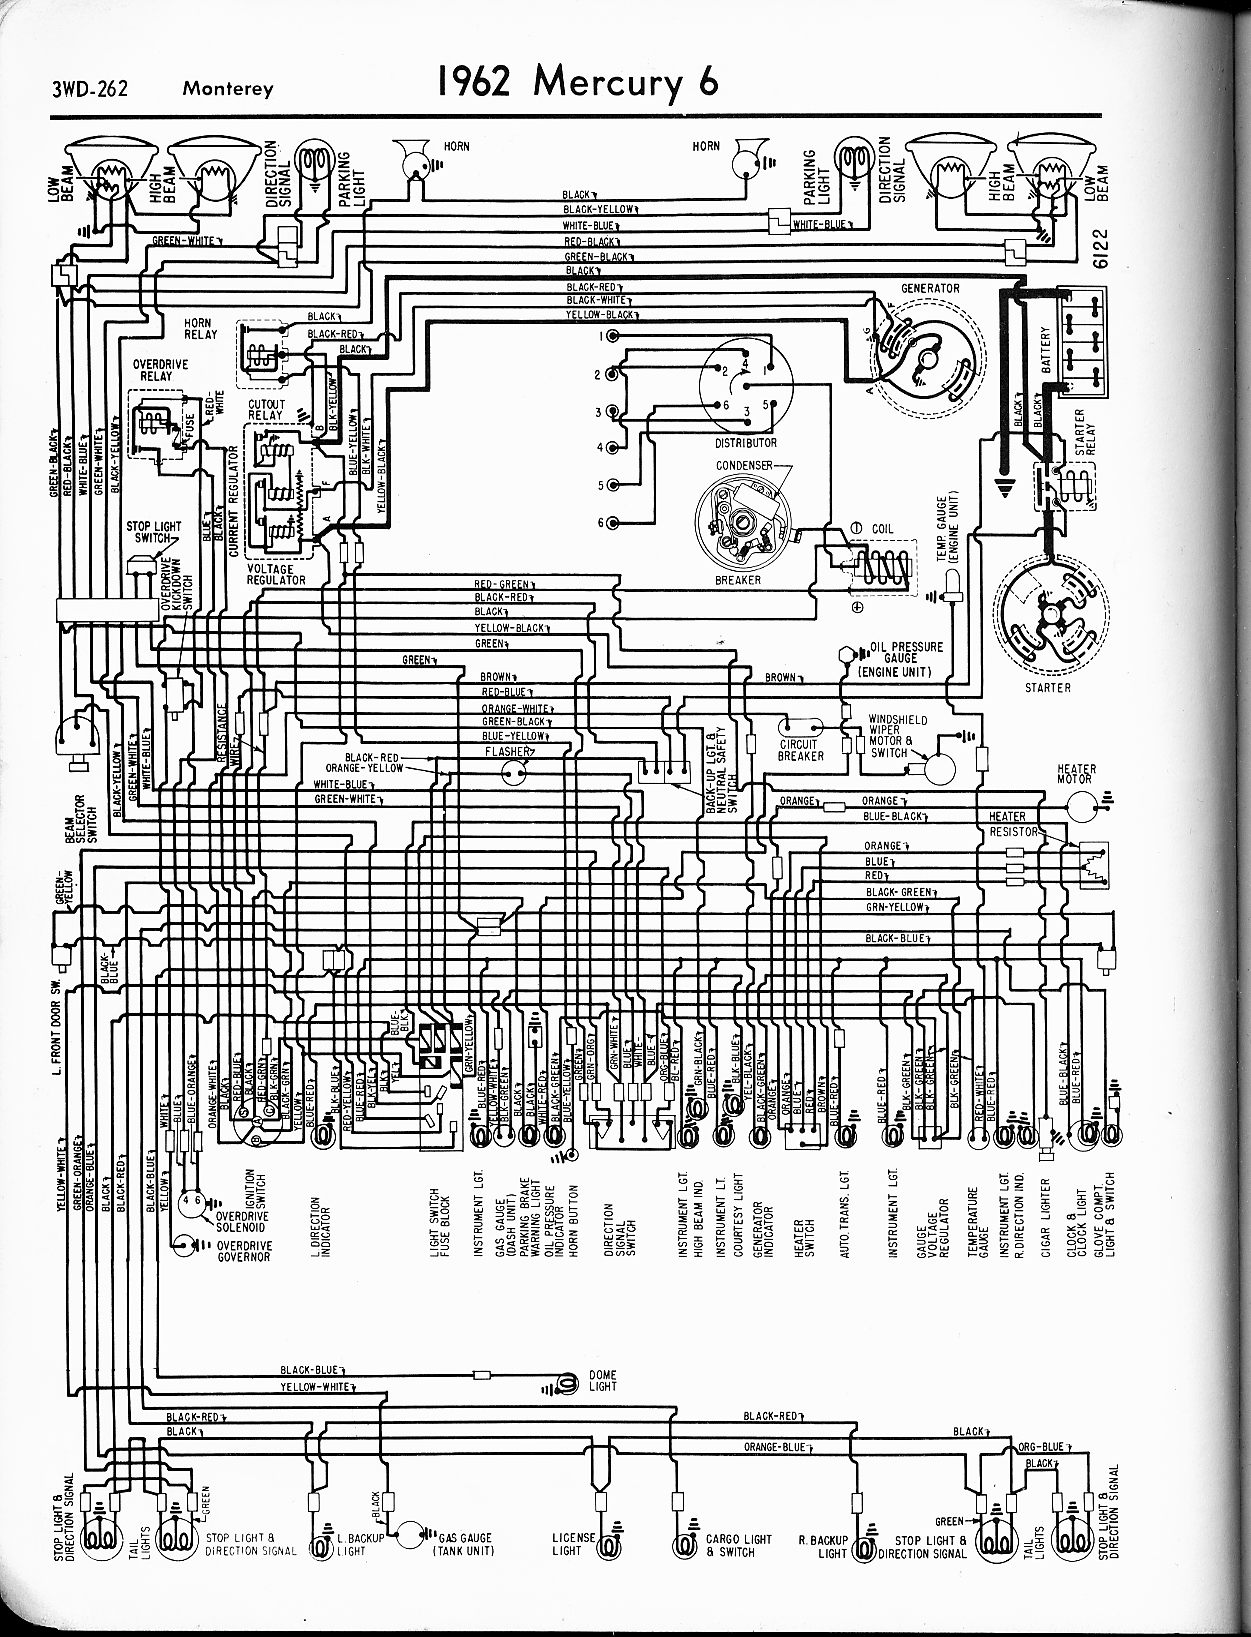 MWire5765 262 mercury wiring diagrams the old car manual project 1957 thunderbird wiring diagram at crackthecode.co